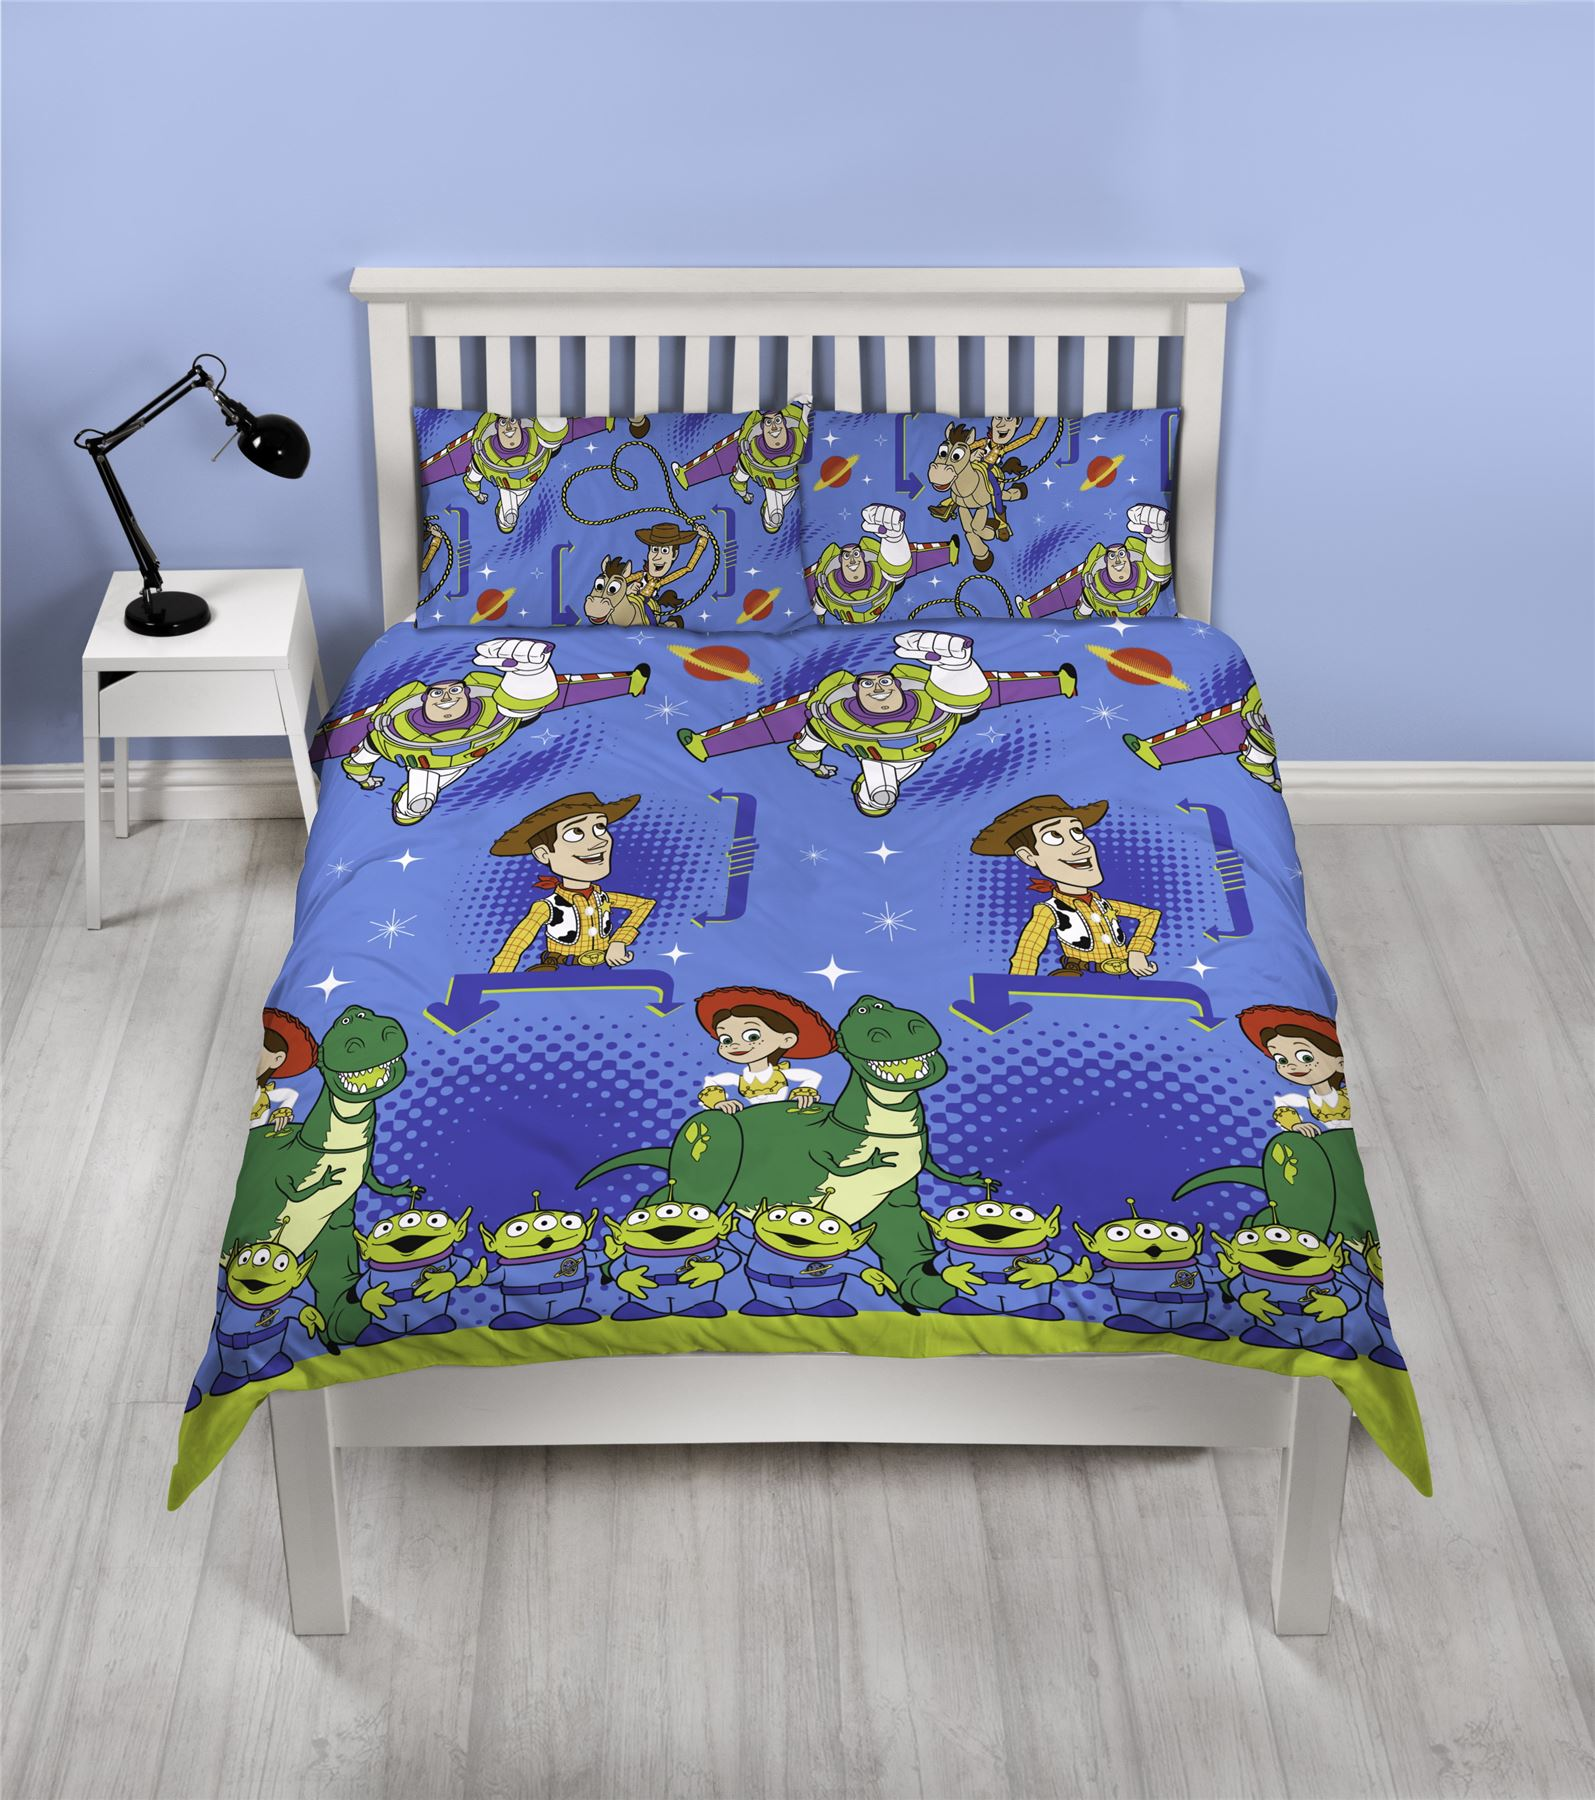 Toy-Story-Friends-Single-Double-Reversible-Duvet-Cover-Bedding-Official-Disney thumbnail 3